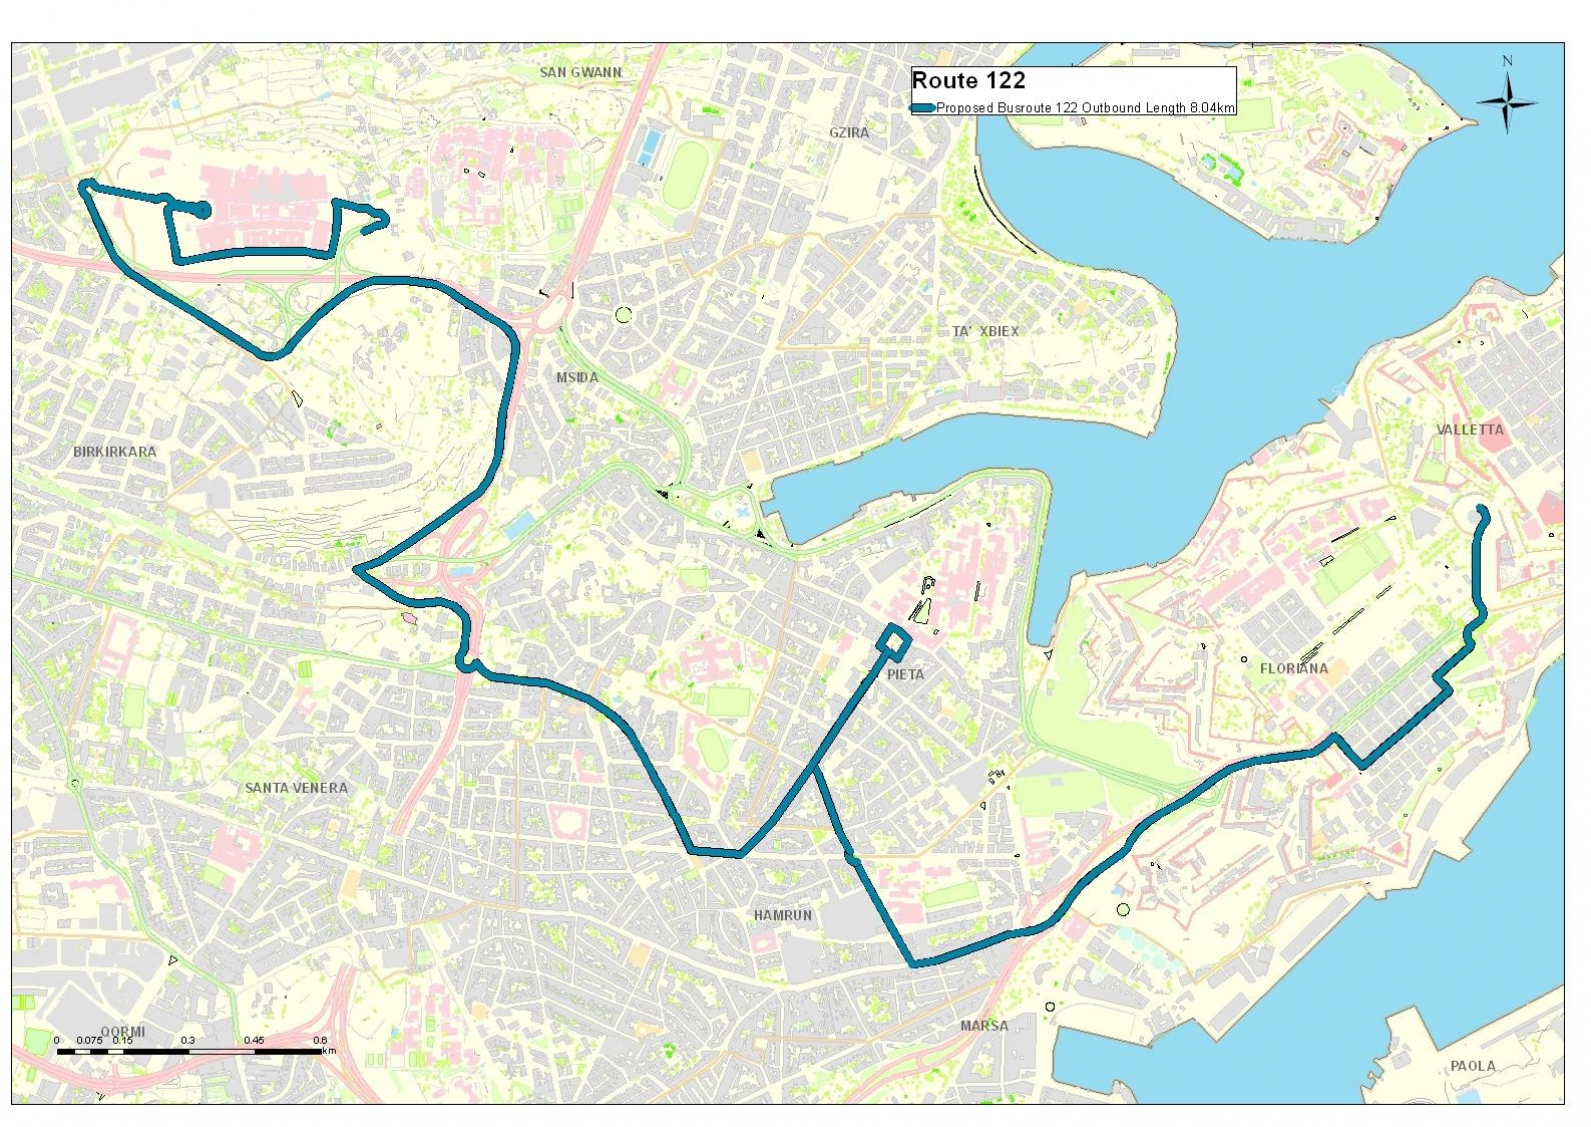 Land-current-network-routes-and-schedules-Valletta-Park-and-Ride-2